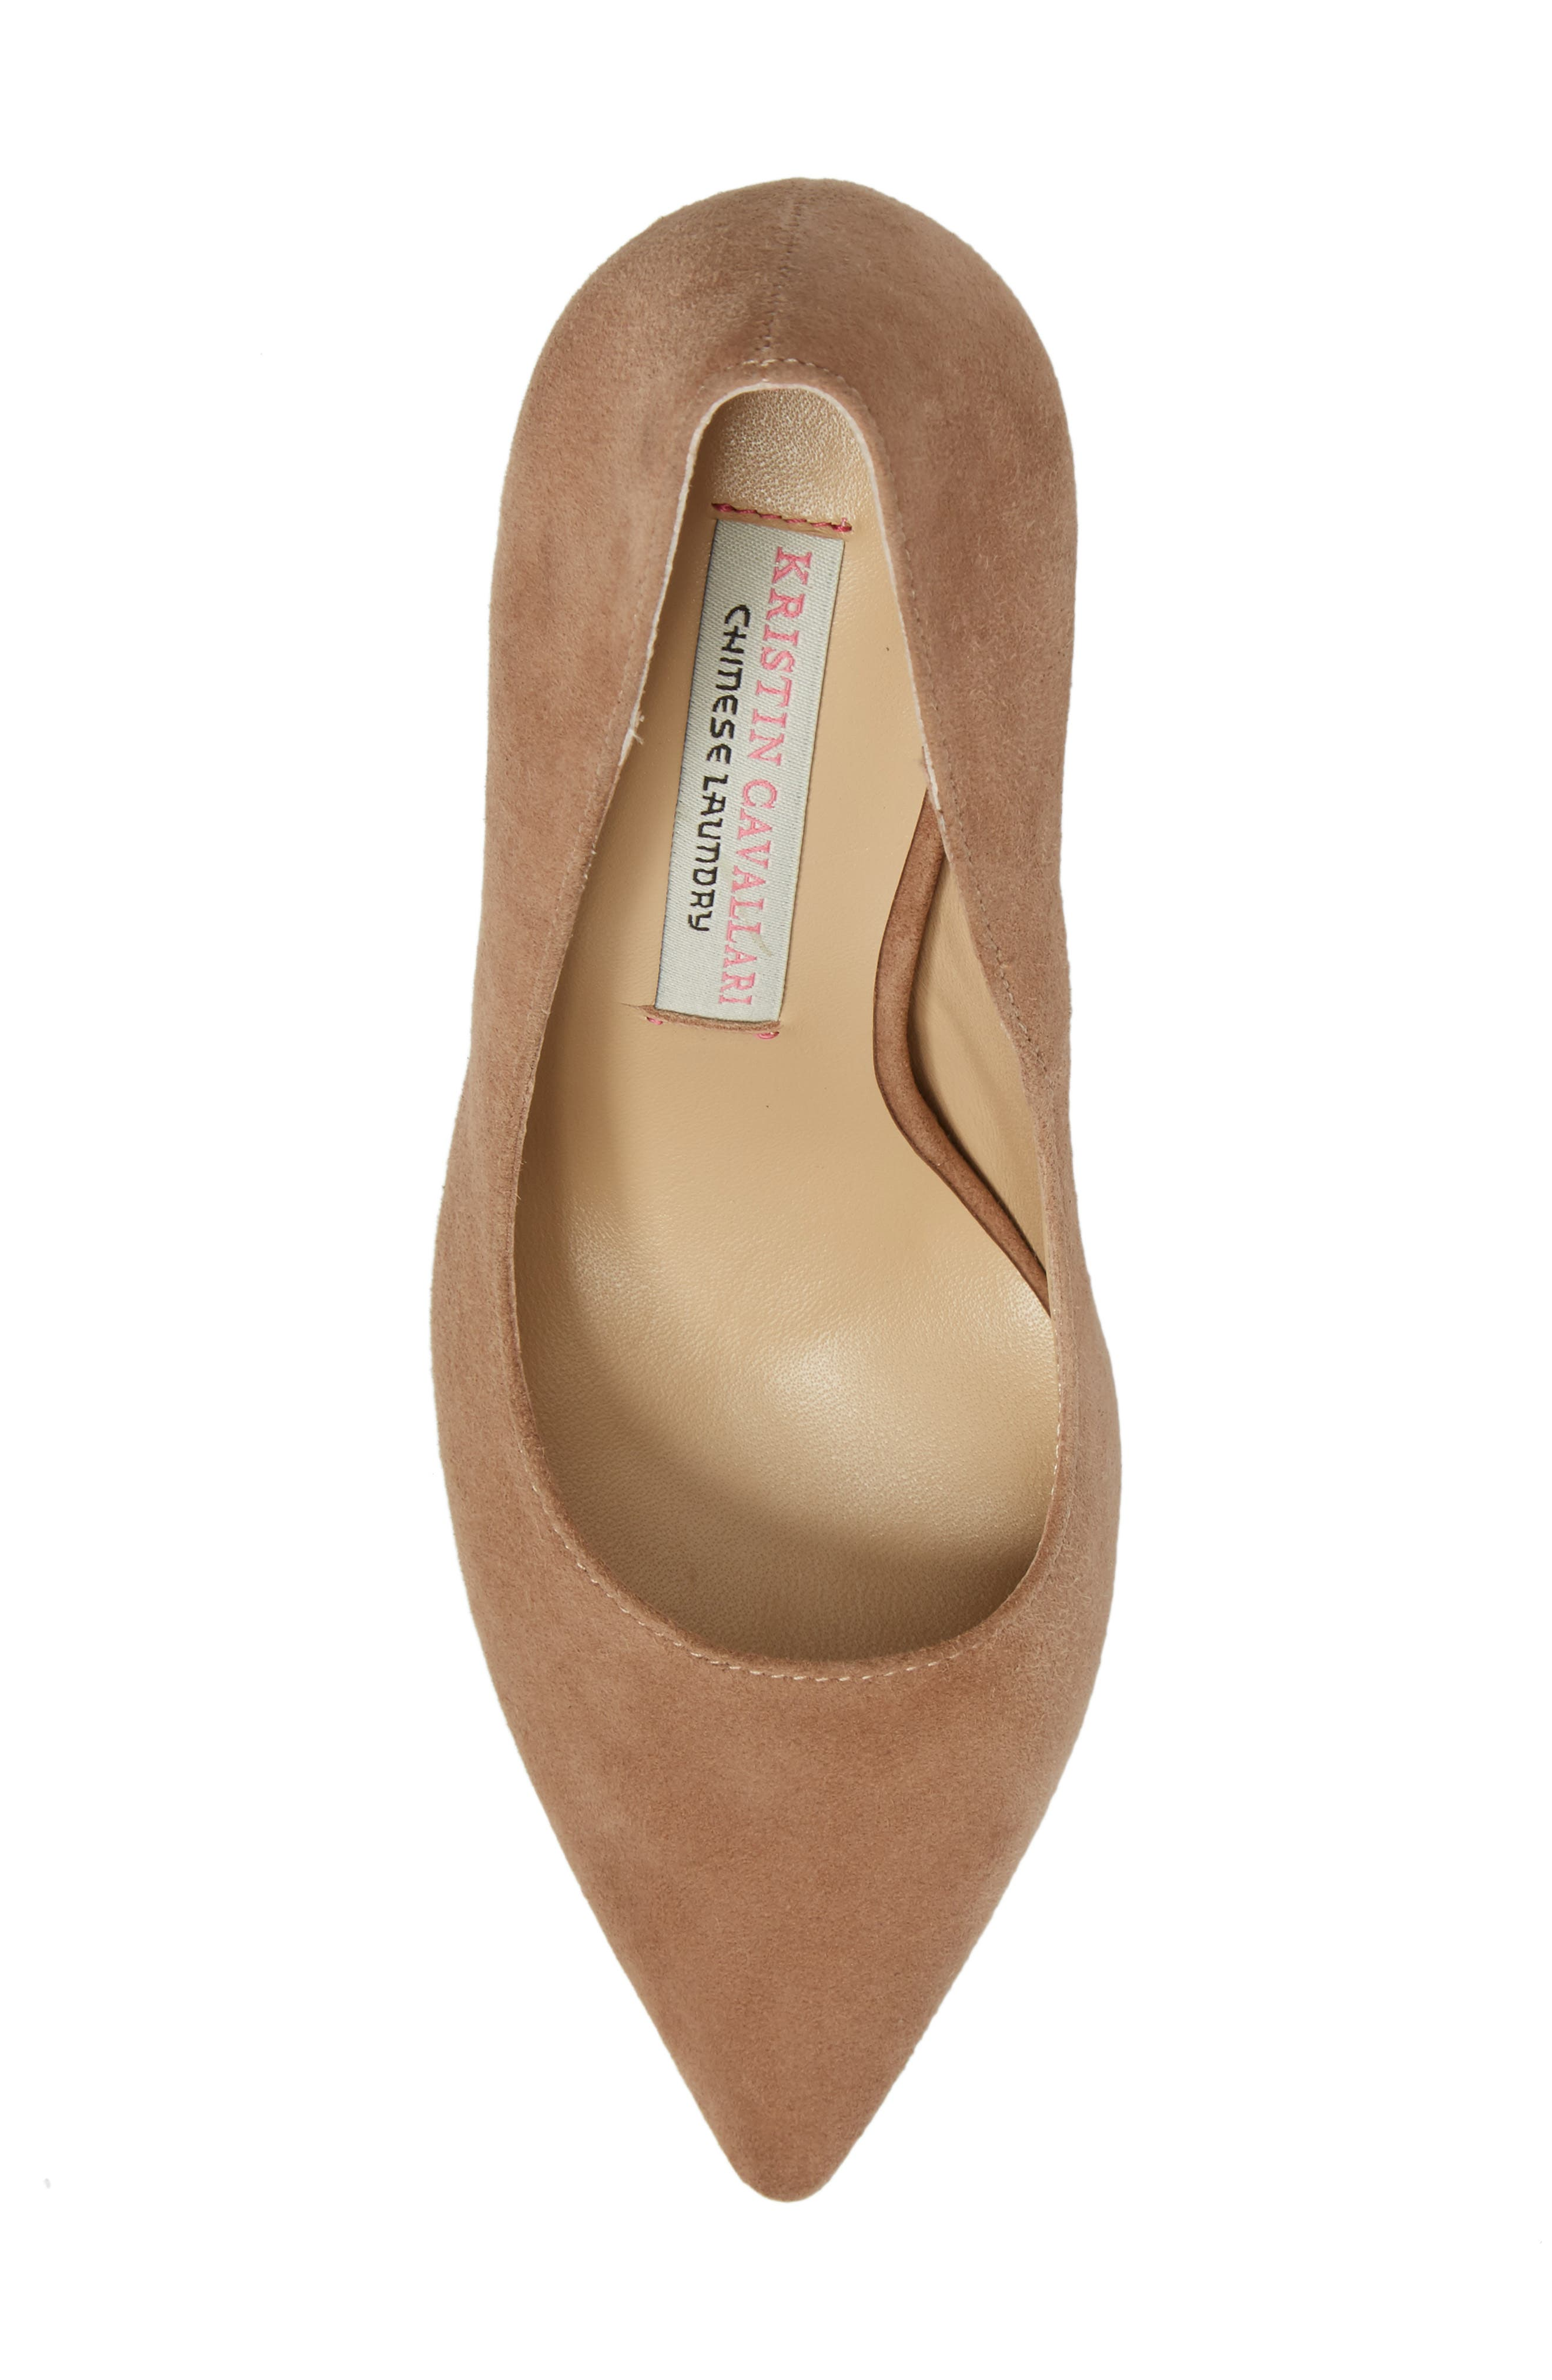 Gisele Pointy Toe Pump,                             Alternate thumbnail 5, color,                             Clay Suede